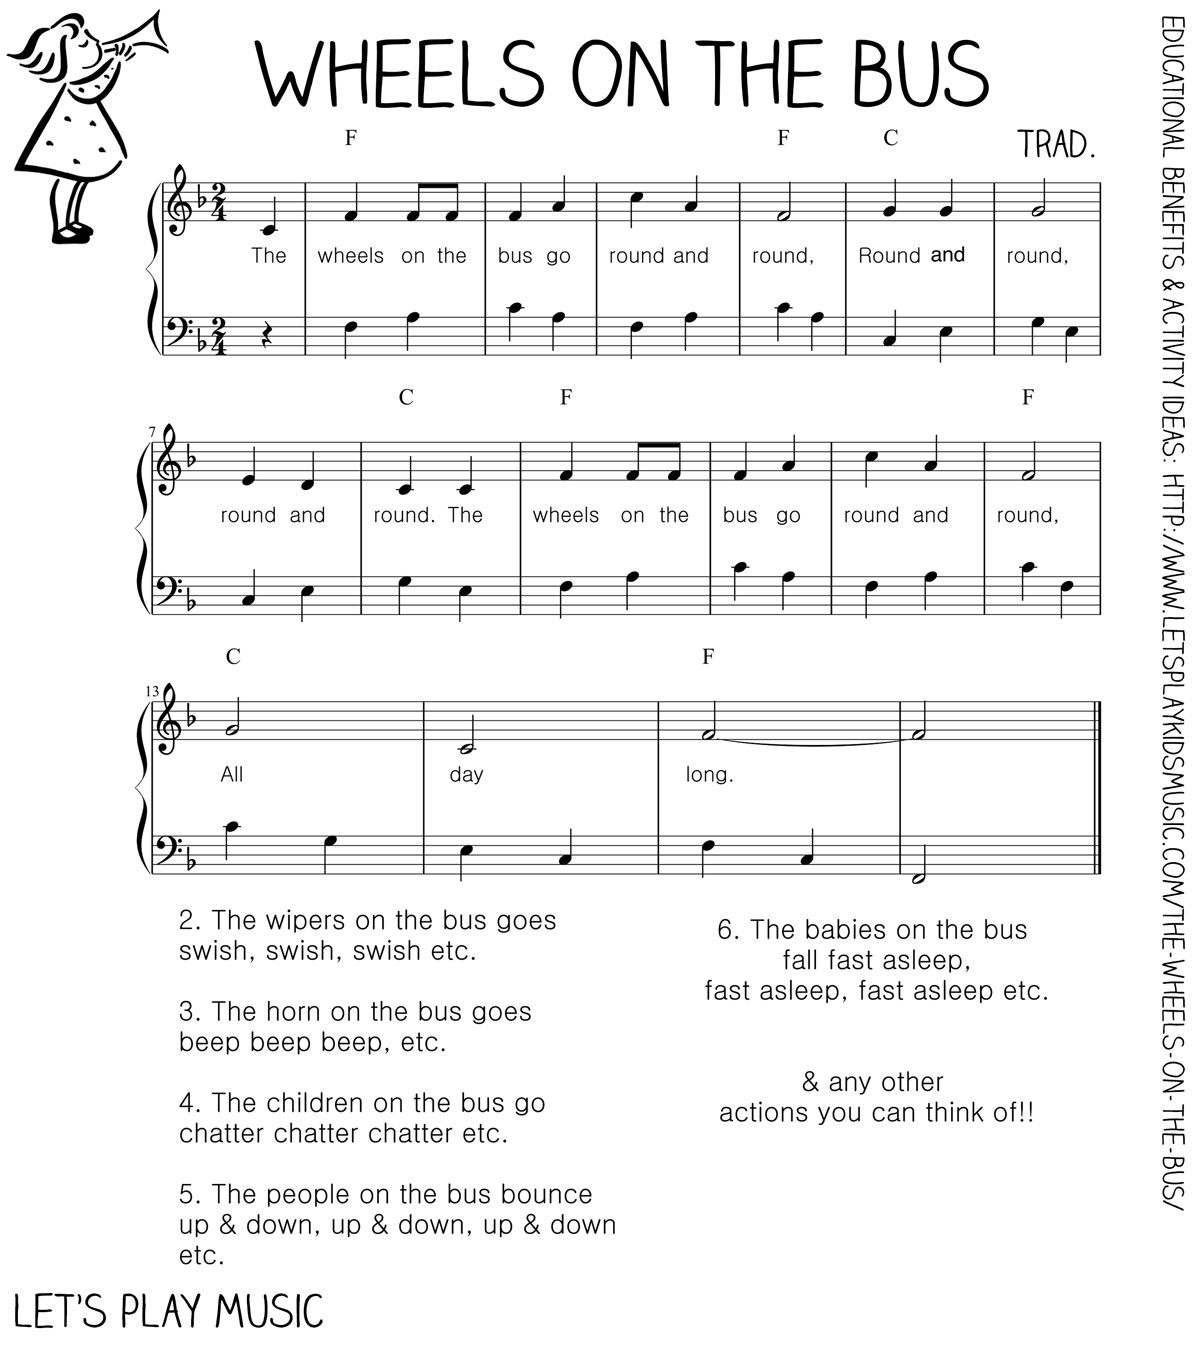 The wheels on the bus action song free sheet music school lets play music free sheet music the wheels on the bus numerous pre hexwebz Image collections